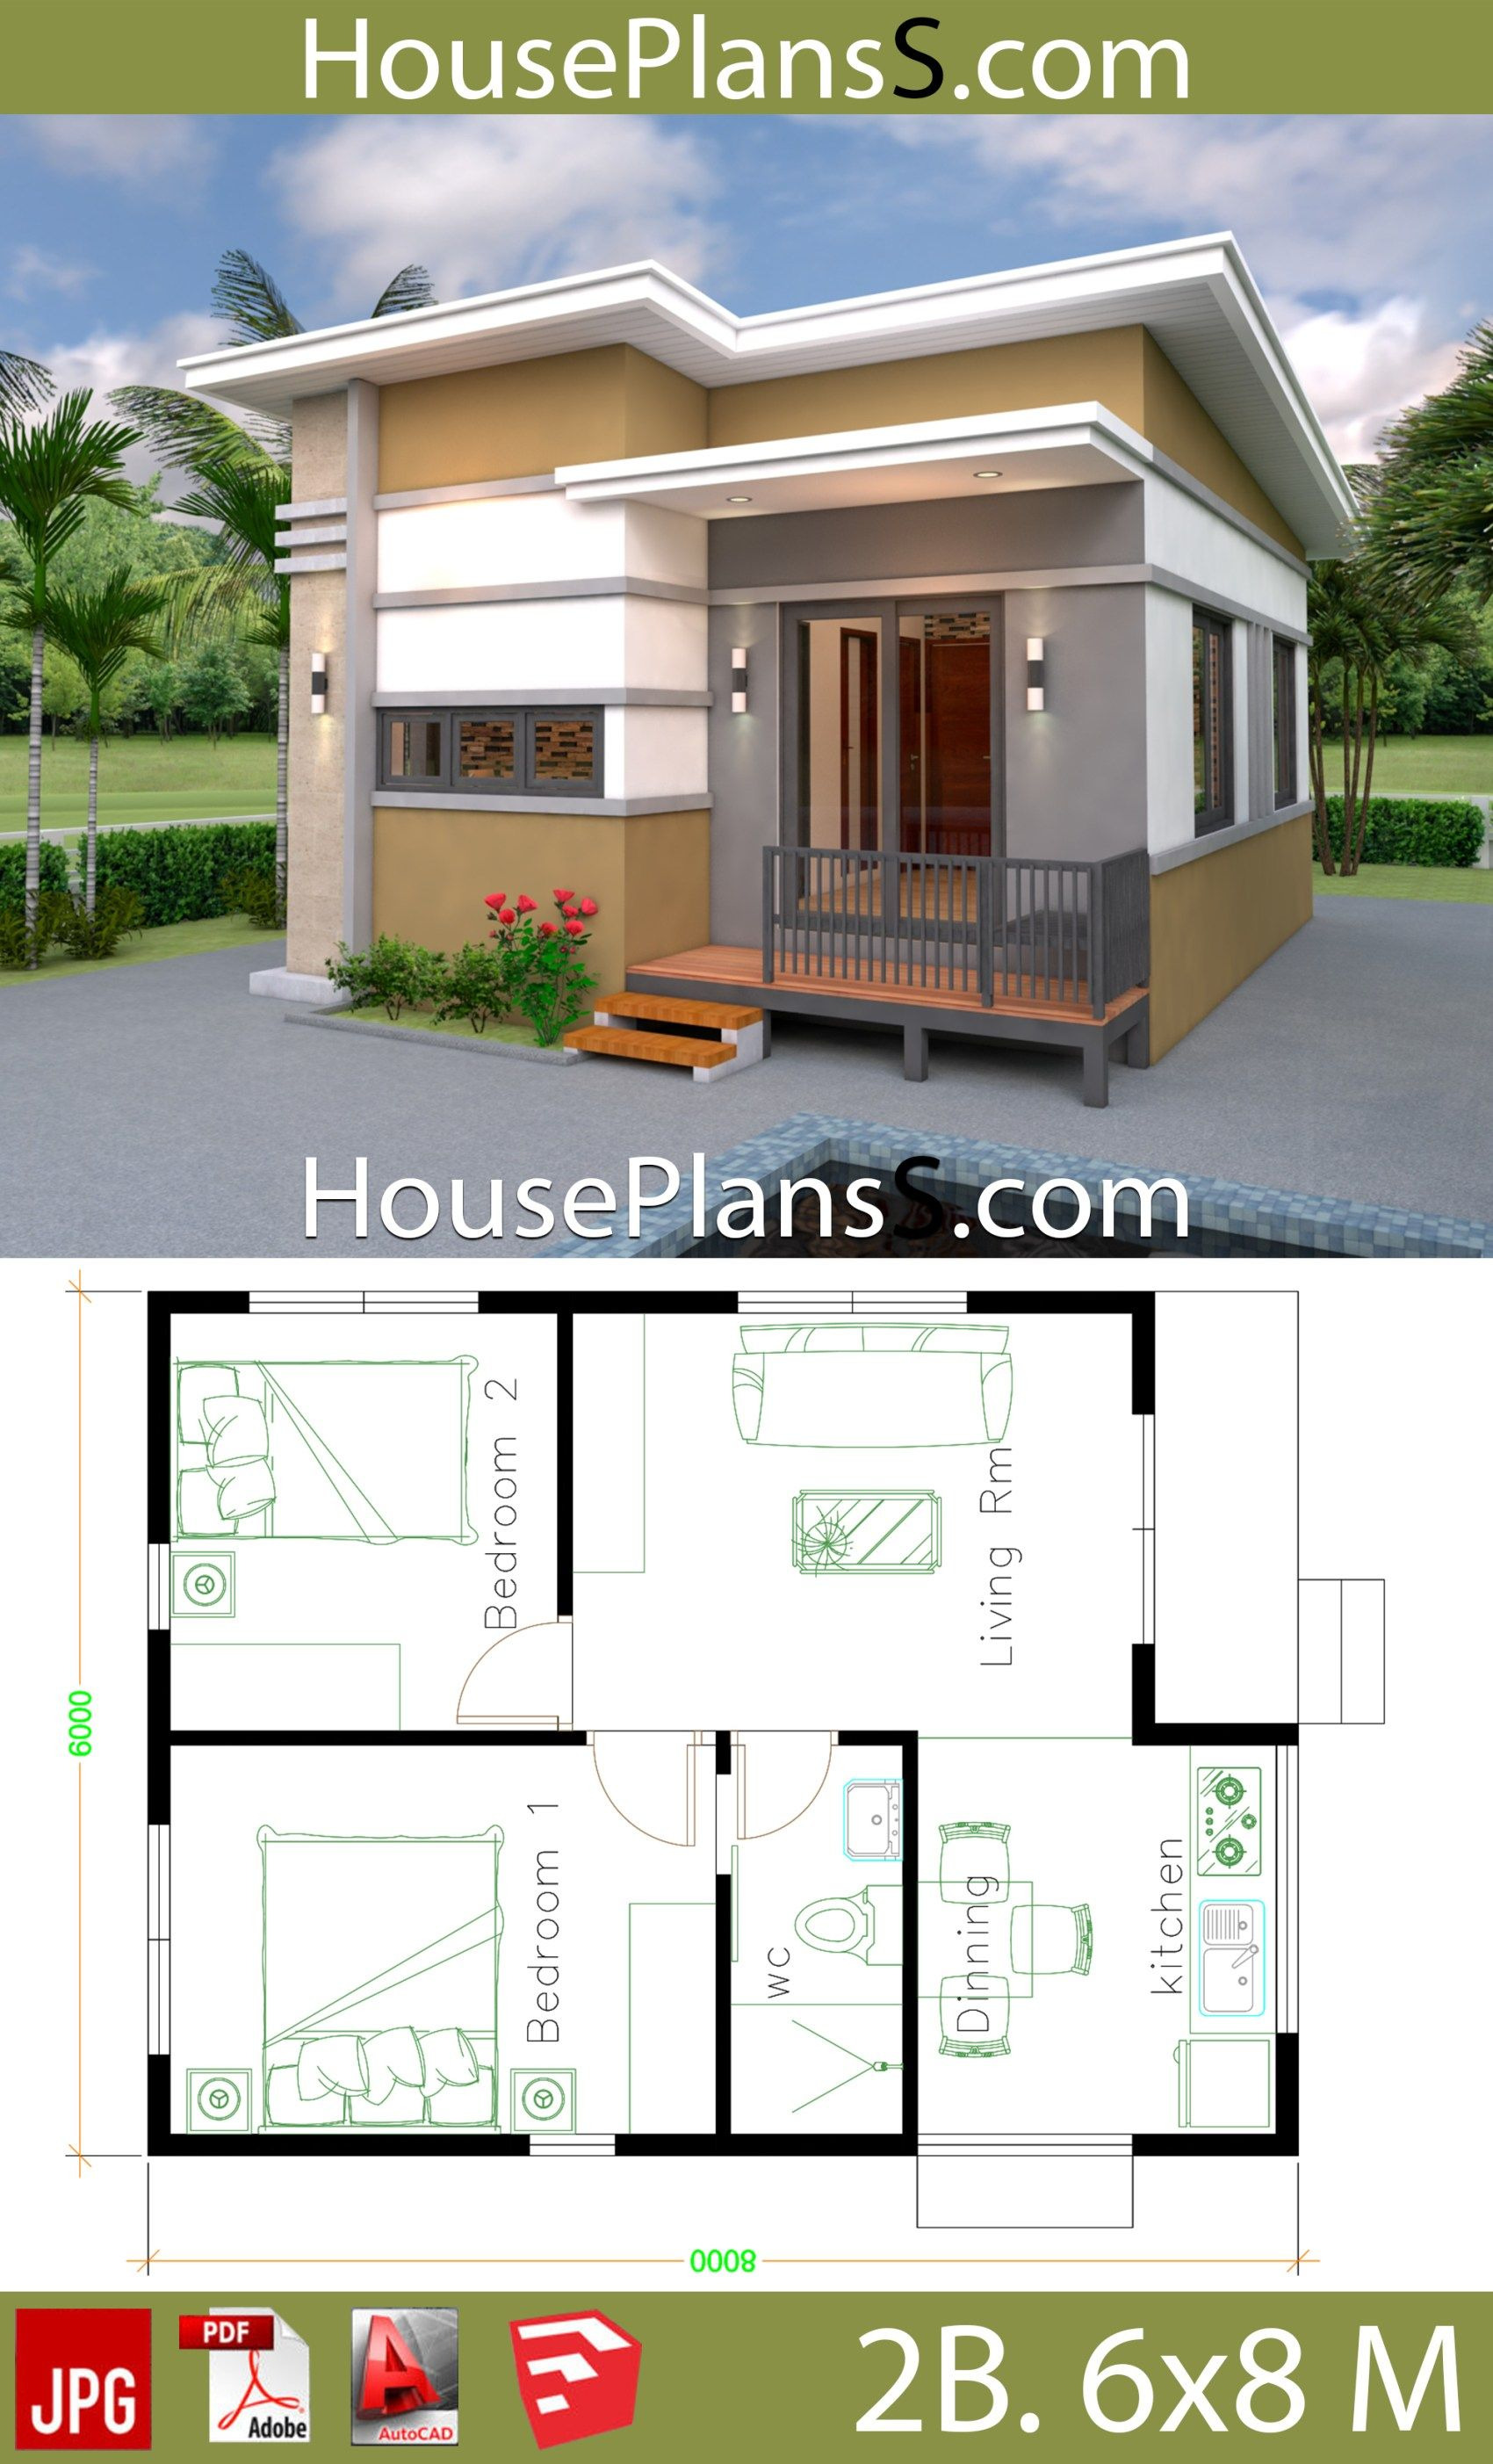 Small House Design Plans Fresh Small House Design Plans 6x8 with 2 Bedrooms